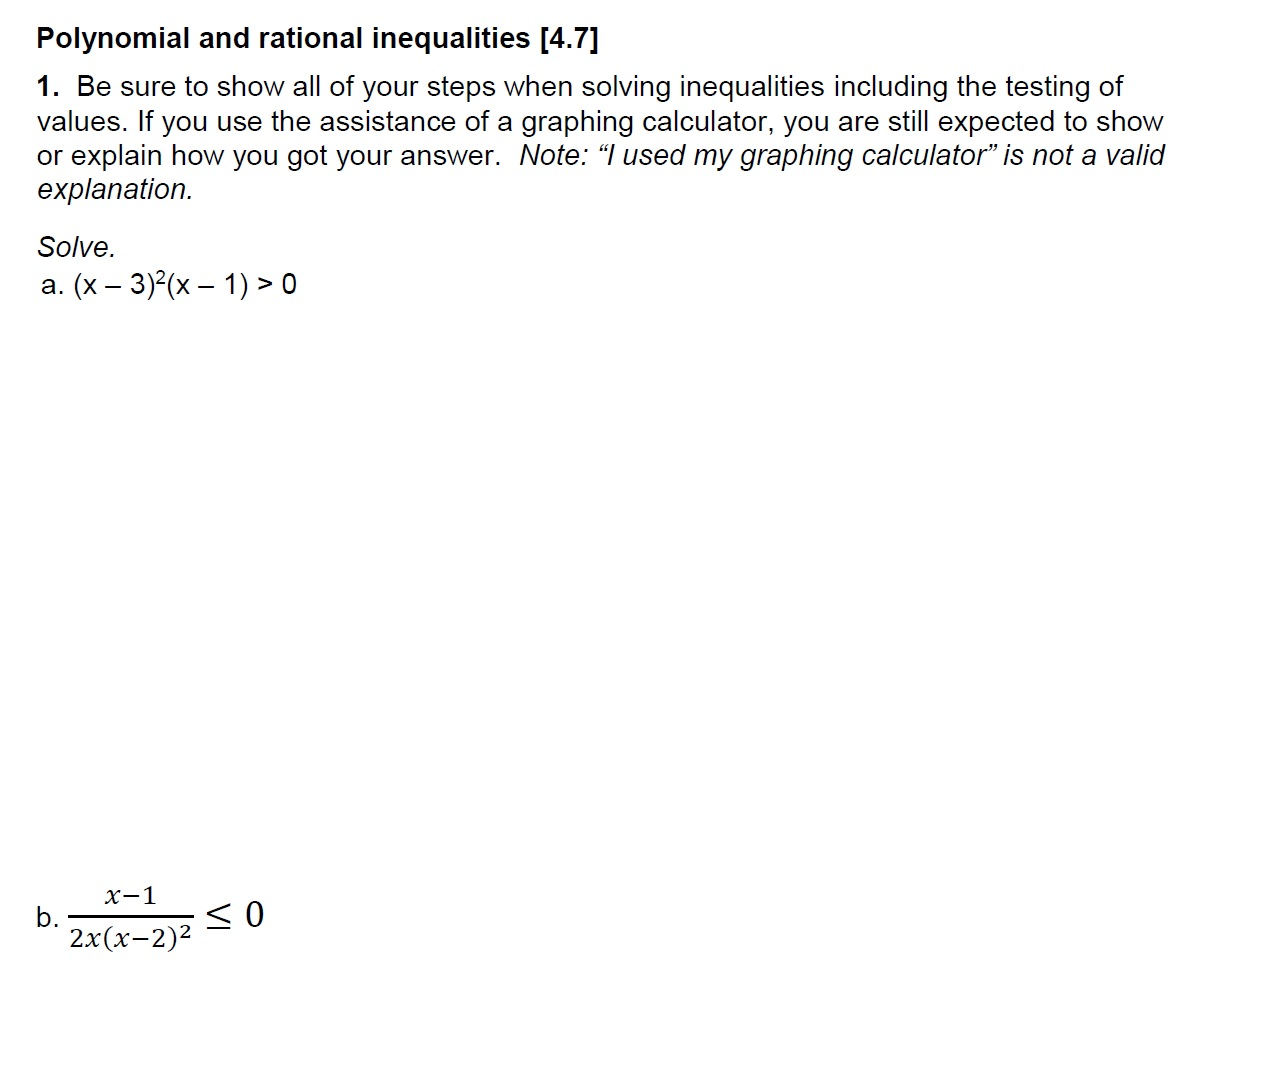 """Polynomial and rational inequalities [4.7] 1. Be sure to show all of your steps when solving inequalities including the testing of values. If you use the assistance of a graphing calculator, you are still expected to show or explain how you got your answer. Note: """"lused my graphing calculator"""" is not a valid explanation Solve. a. (x - 3)(x )> 0 x-1 2x(x-2)2"""